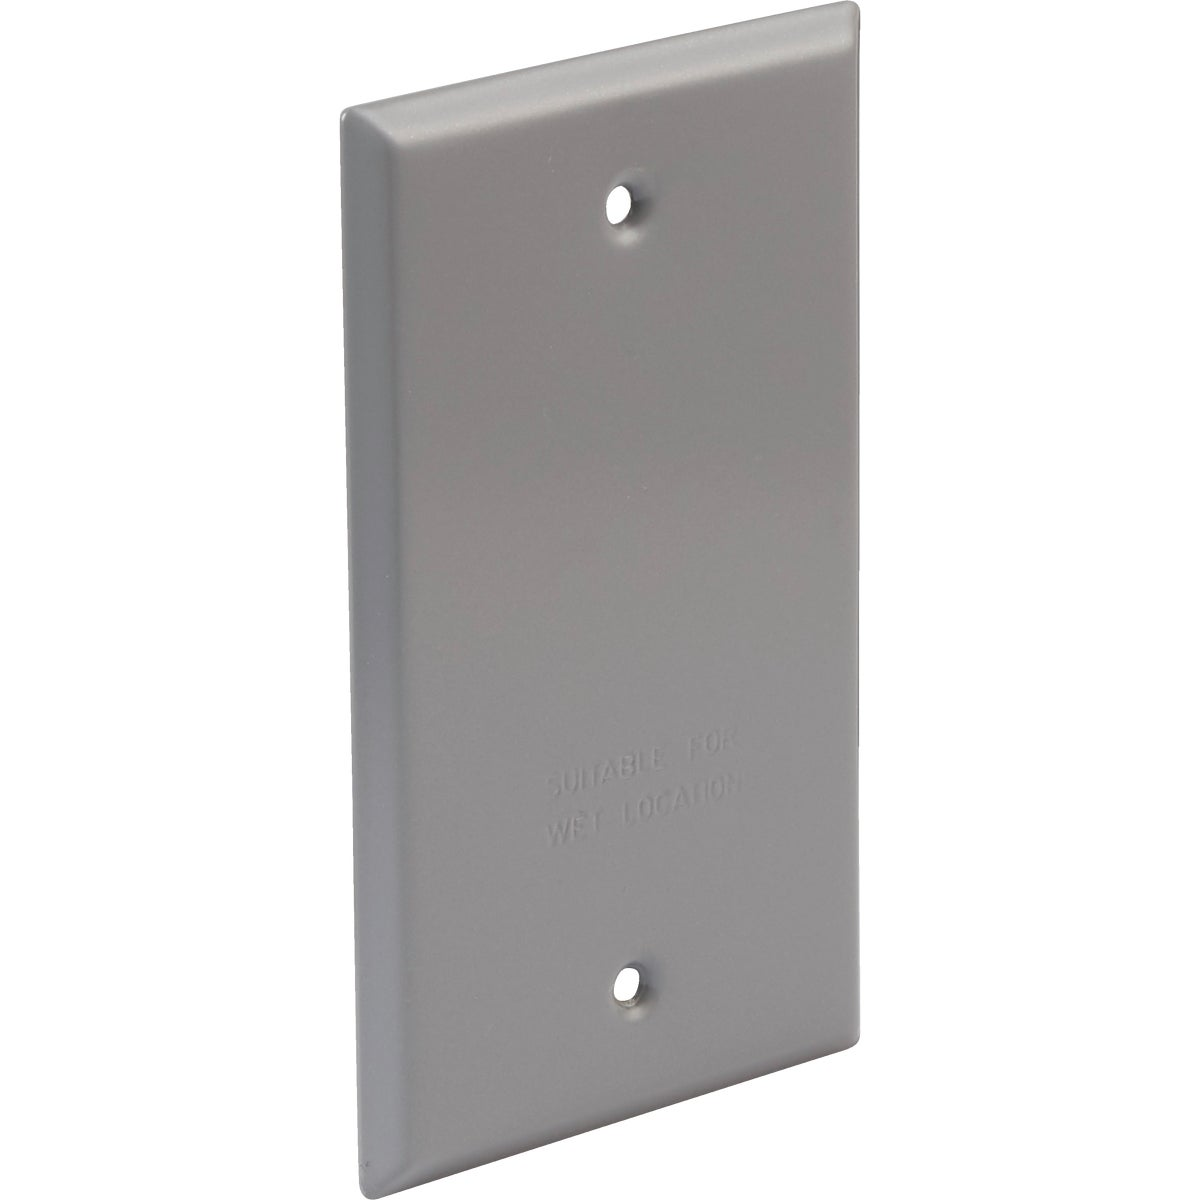 GRAY OUTDR BLANK COVER - 5973-0 by Hubbell